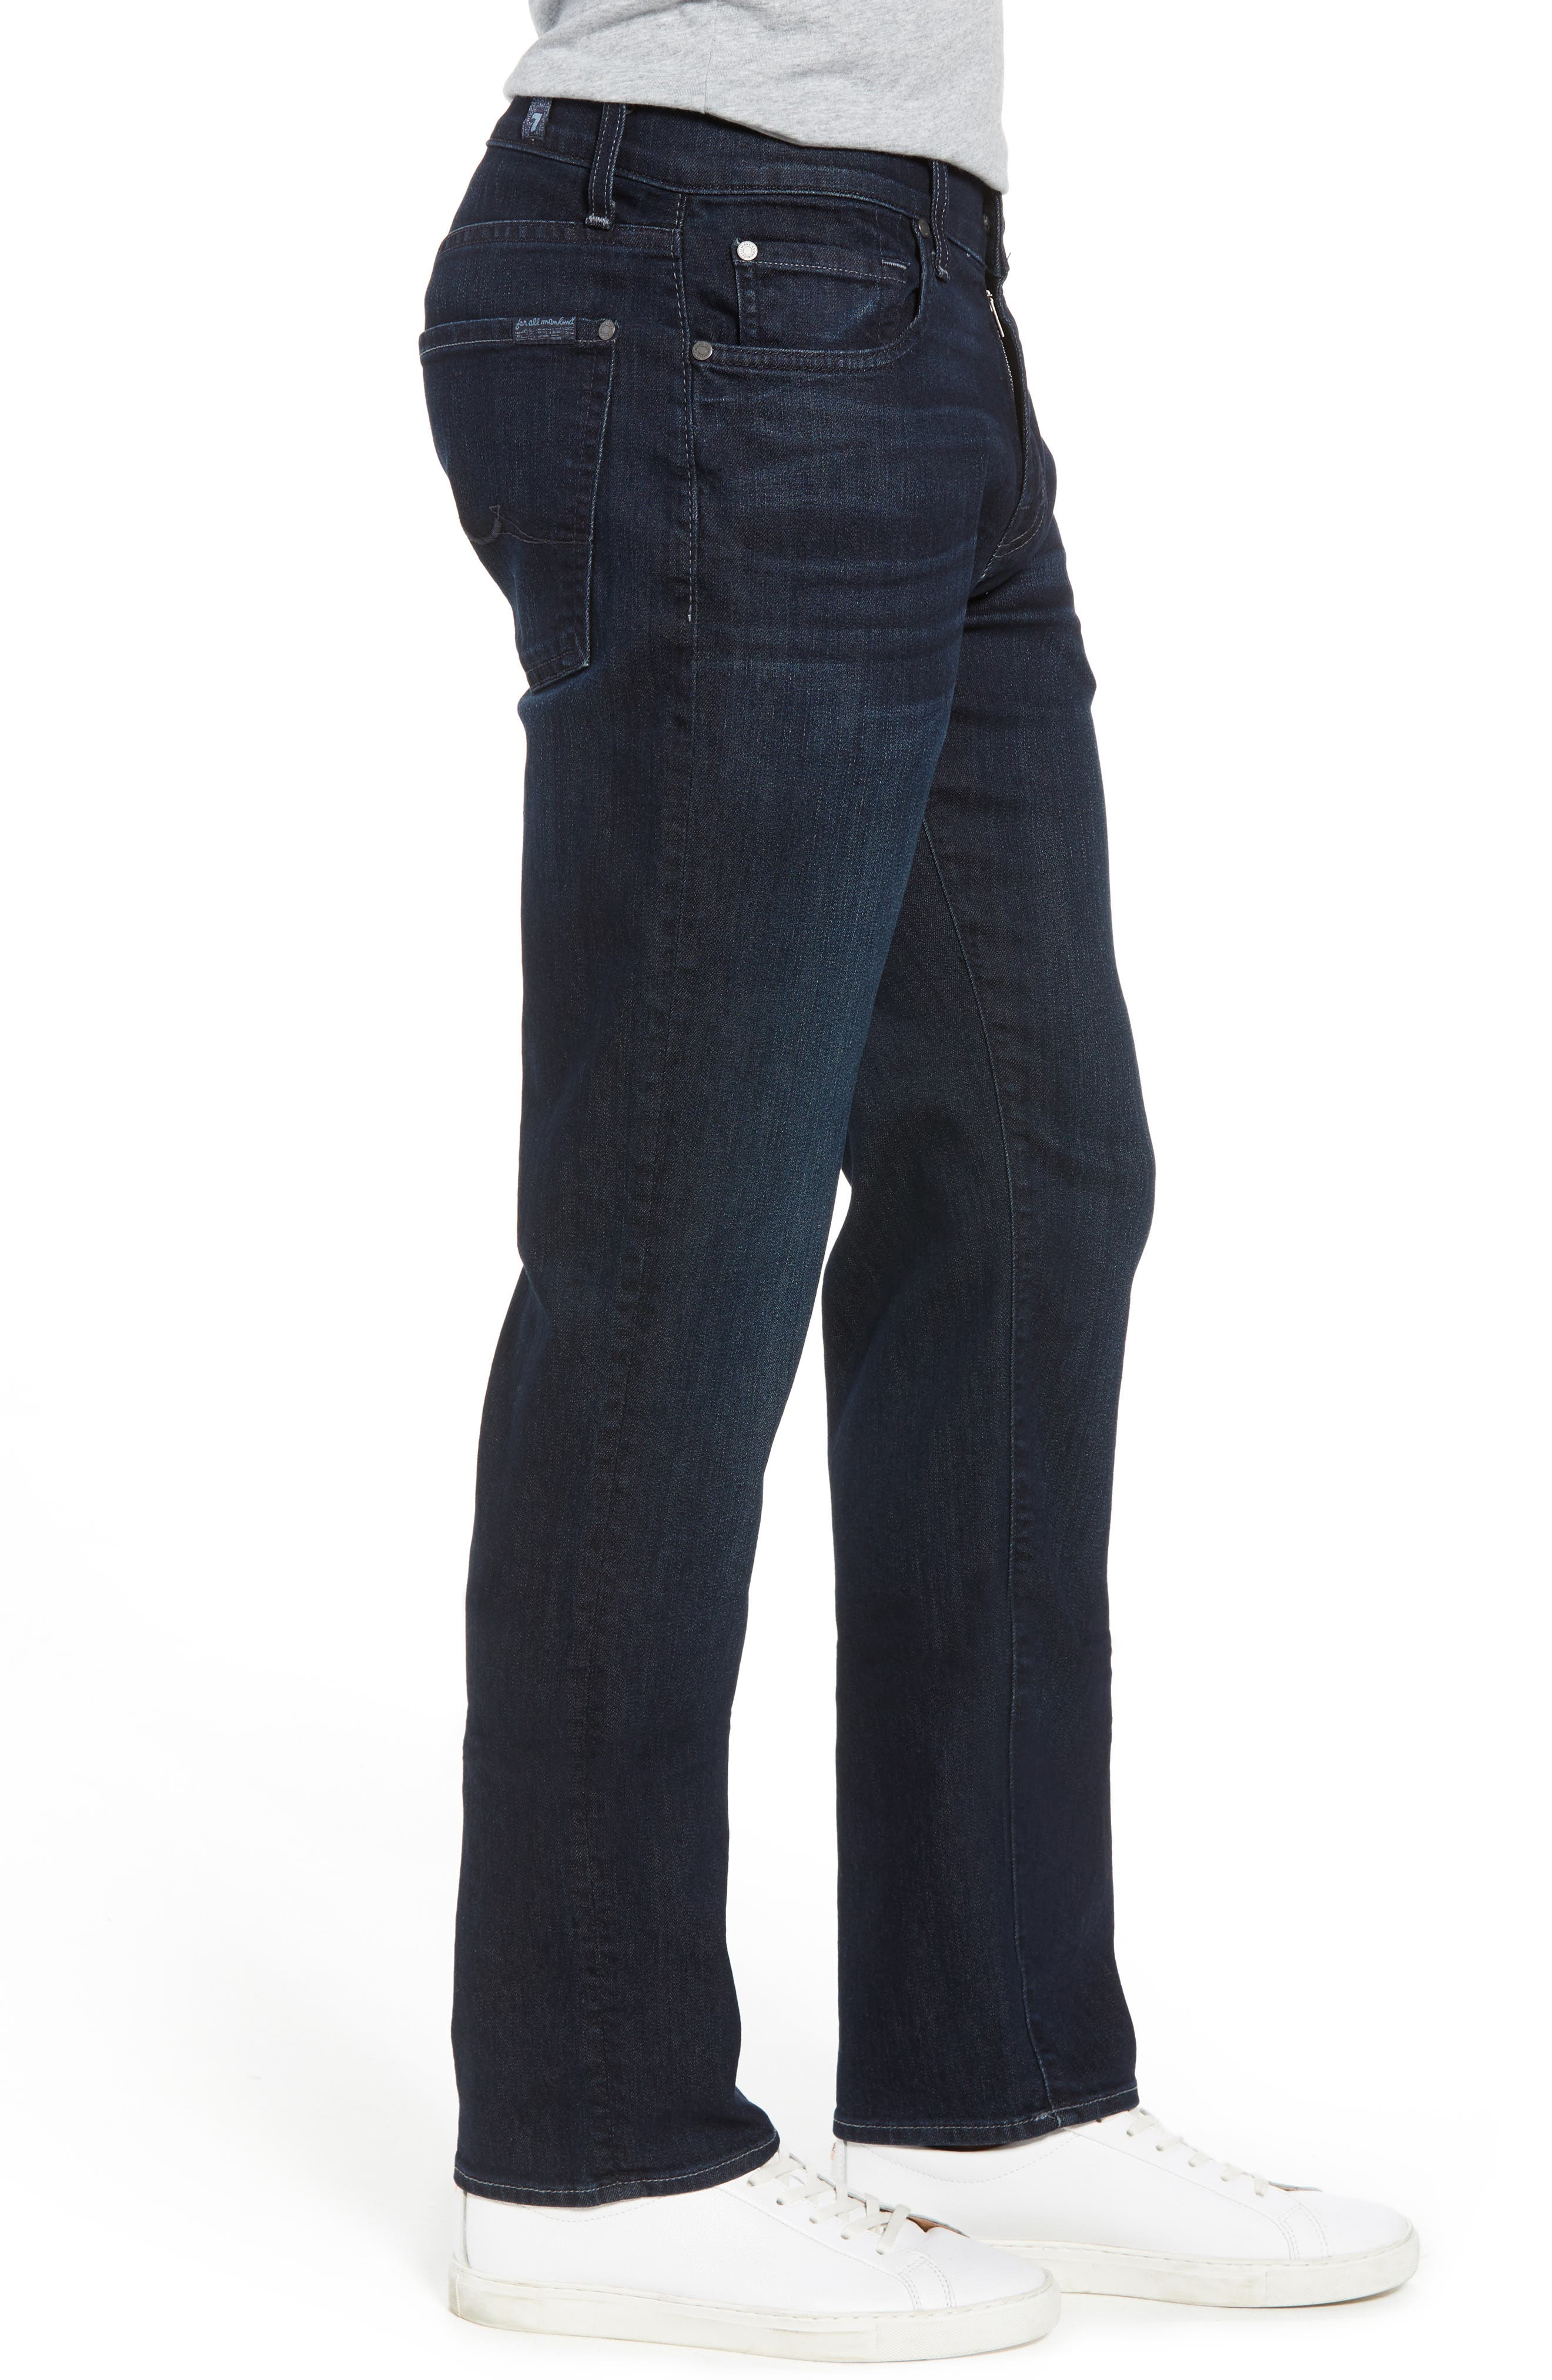 7 FOR ALL MANKIND<SUP>®</SUP>, Airweft Standard Straight Leg Jeans, Alternate thumbnail 3, color, 401